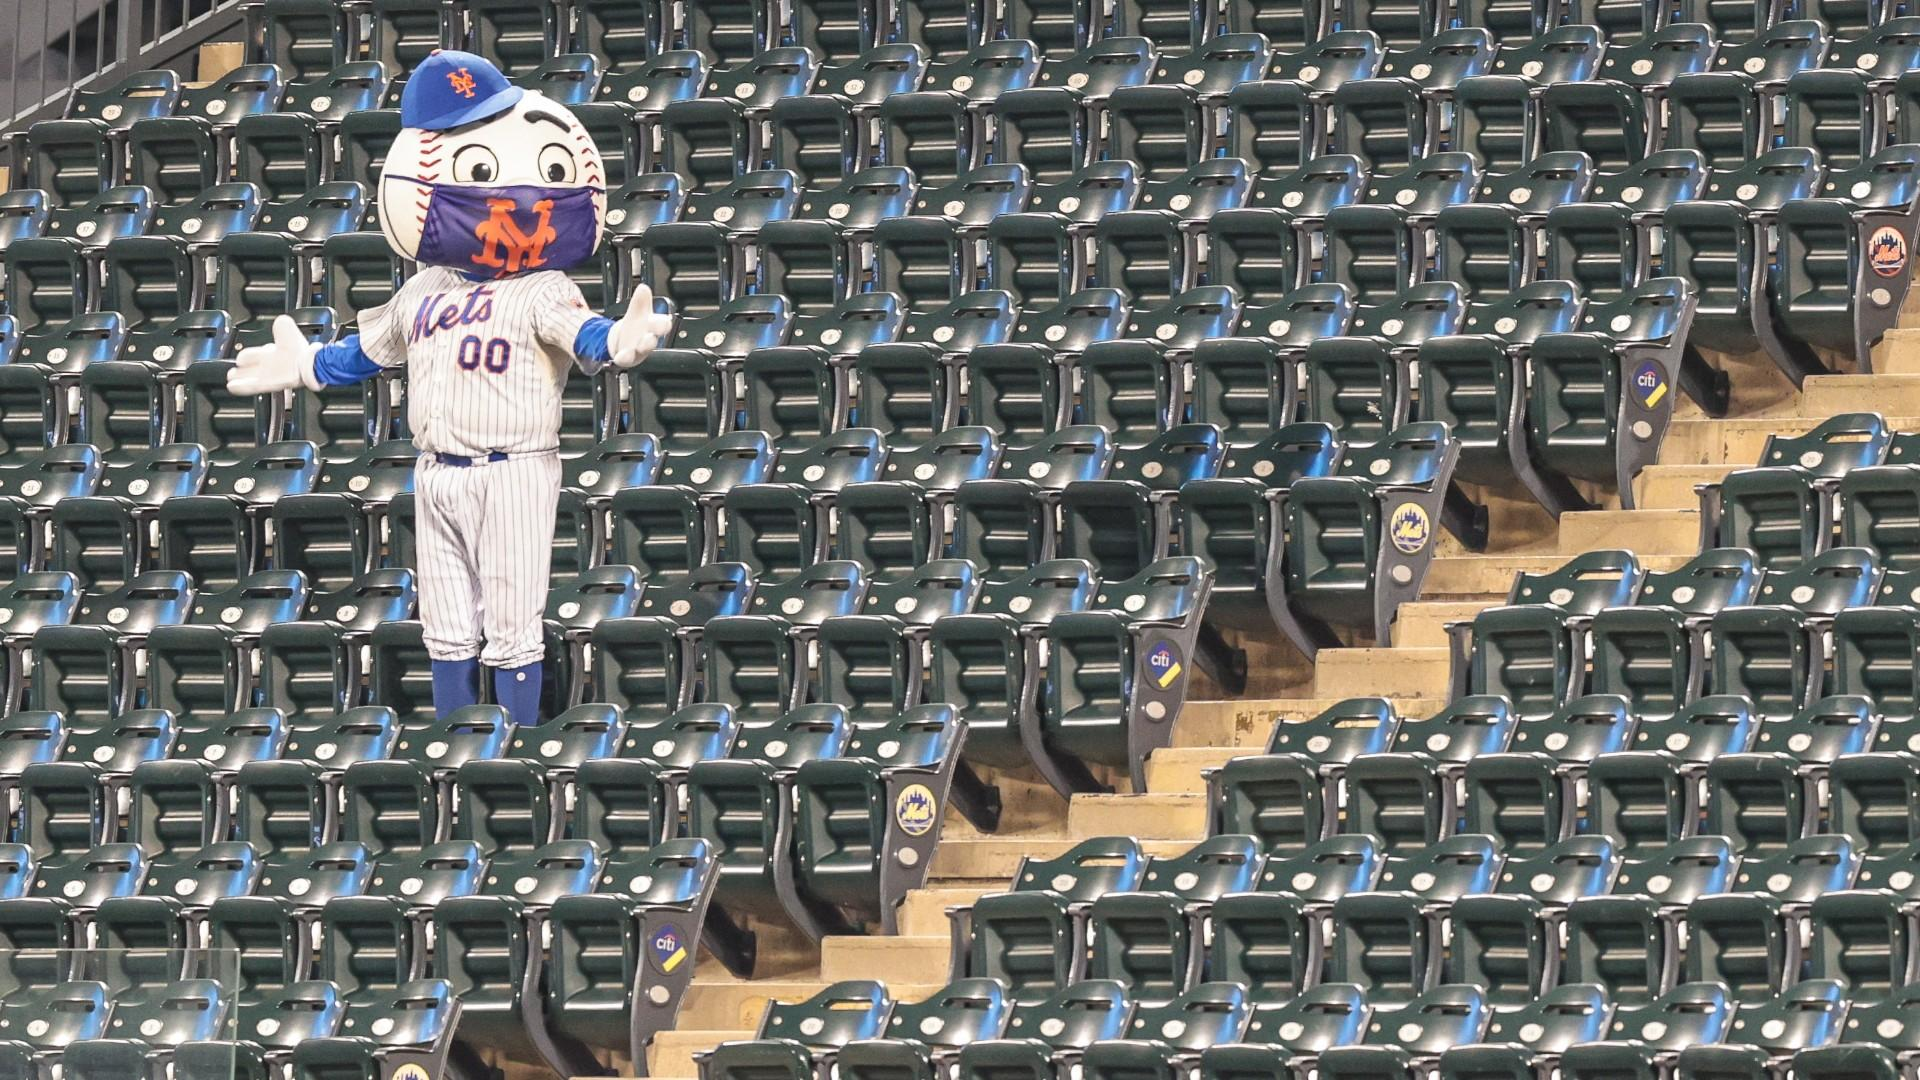 Nationals' rout of Mets spurs Twitter jokes of cardboard fans leaving early